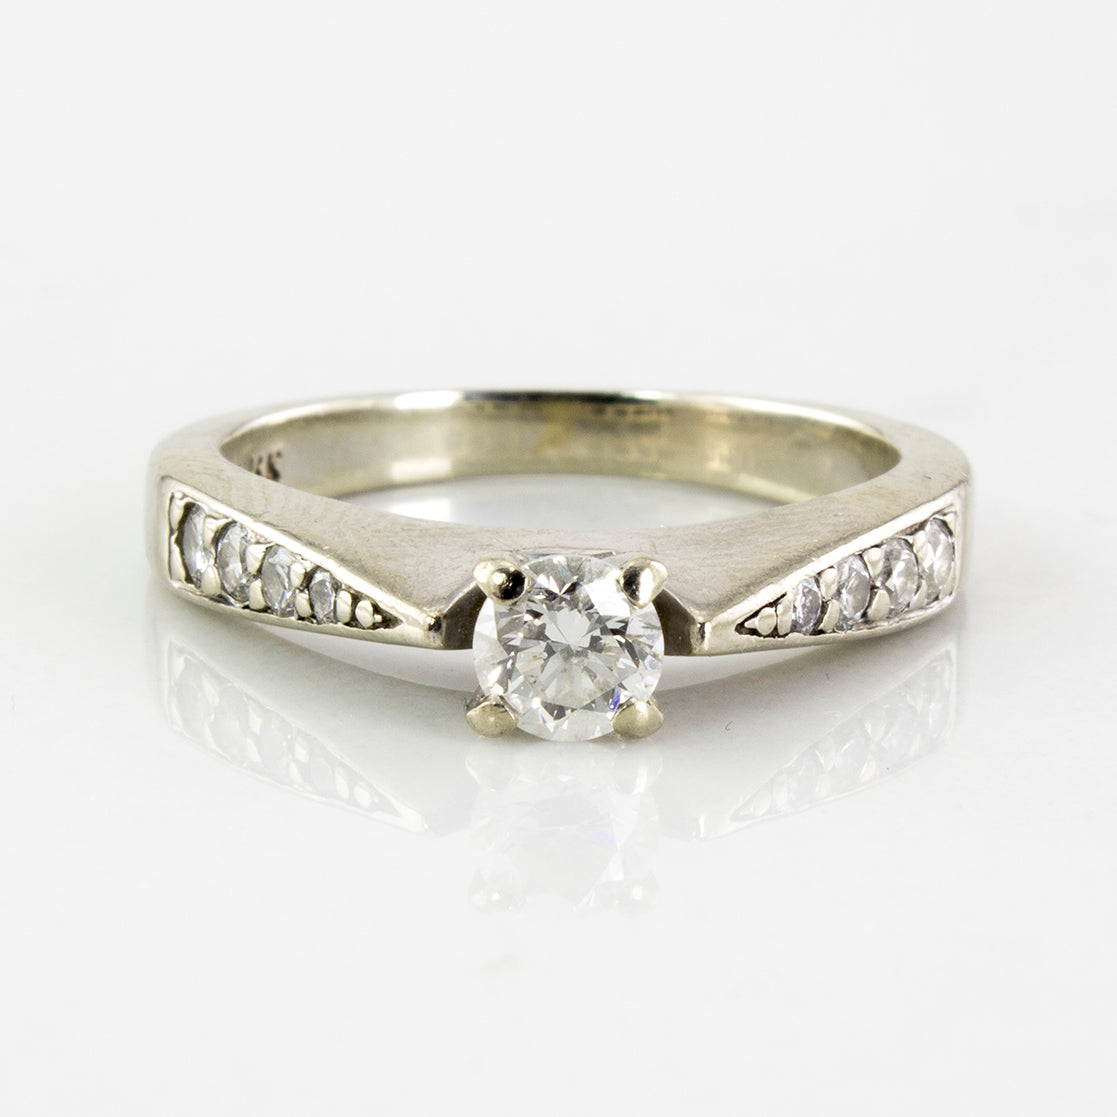 Tapered Flush Set Engagement Ring | 0.49 ctw | SZ 5.75 |